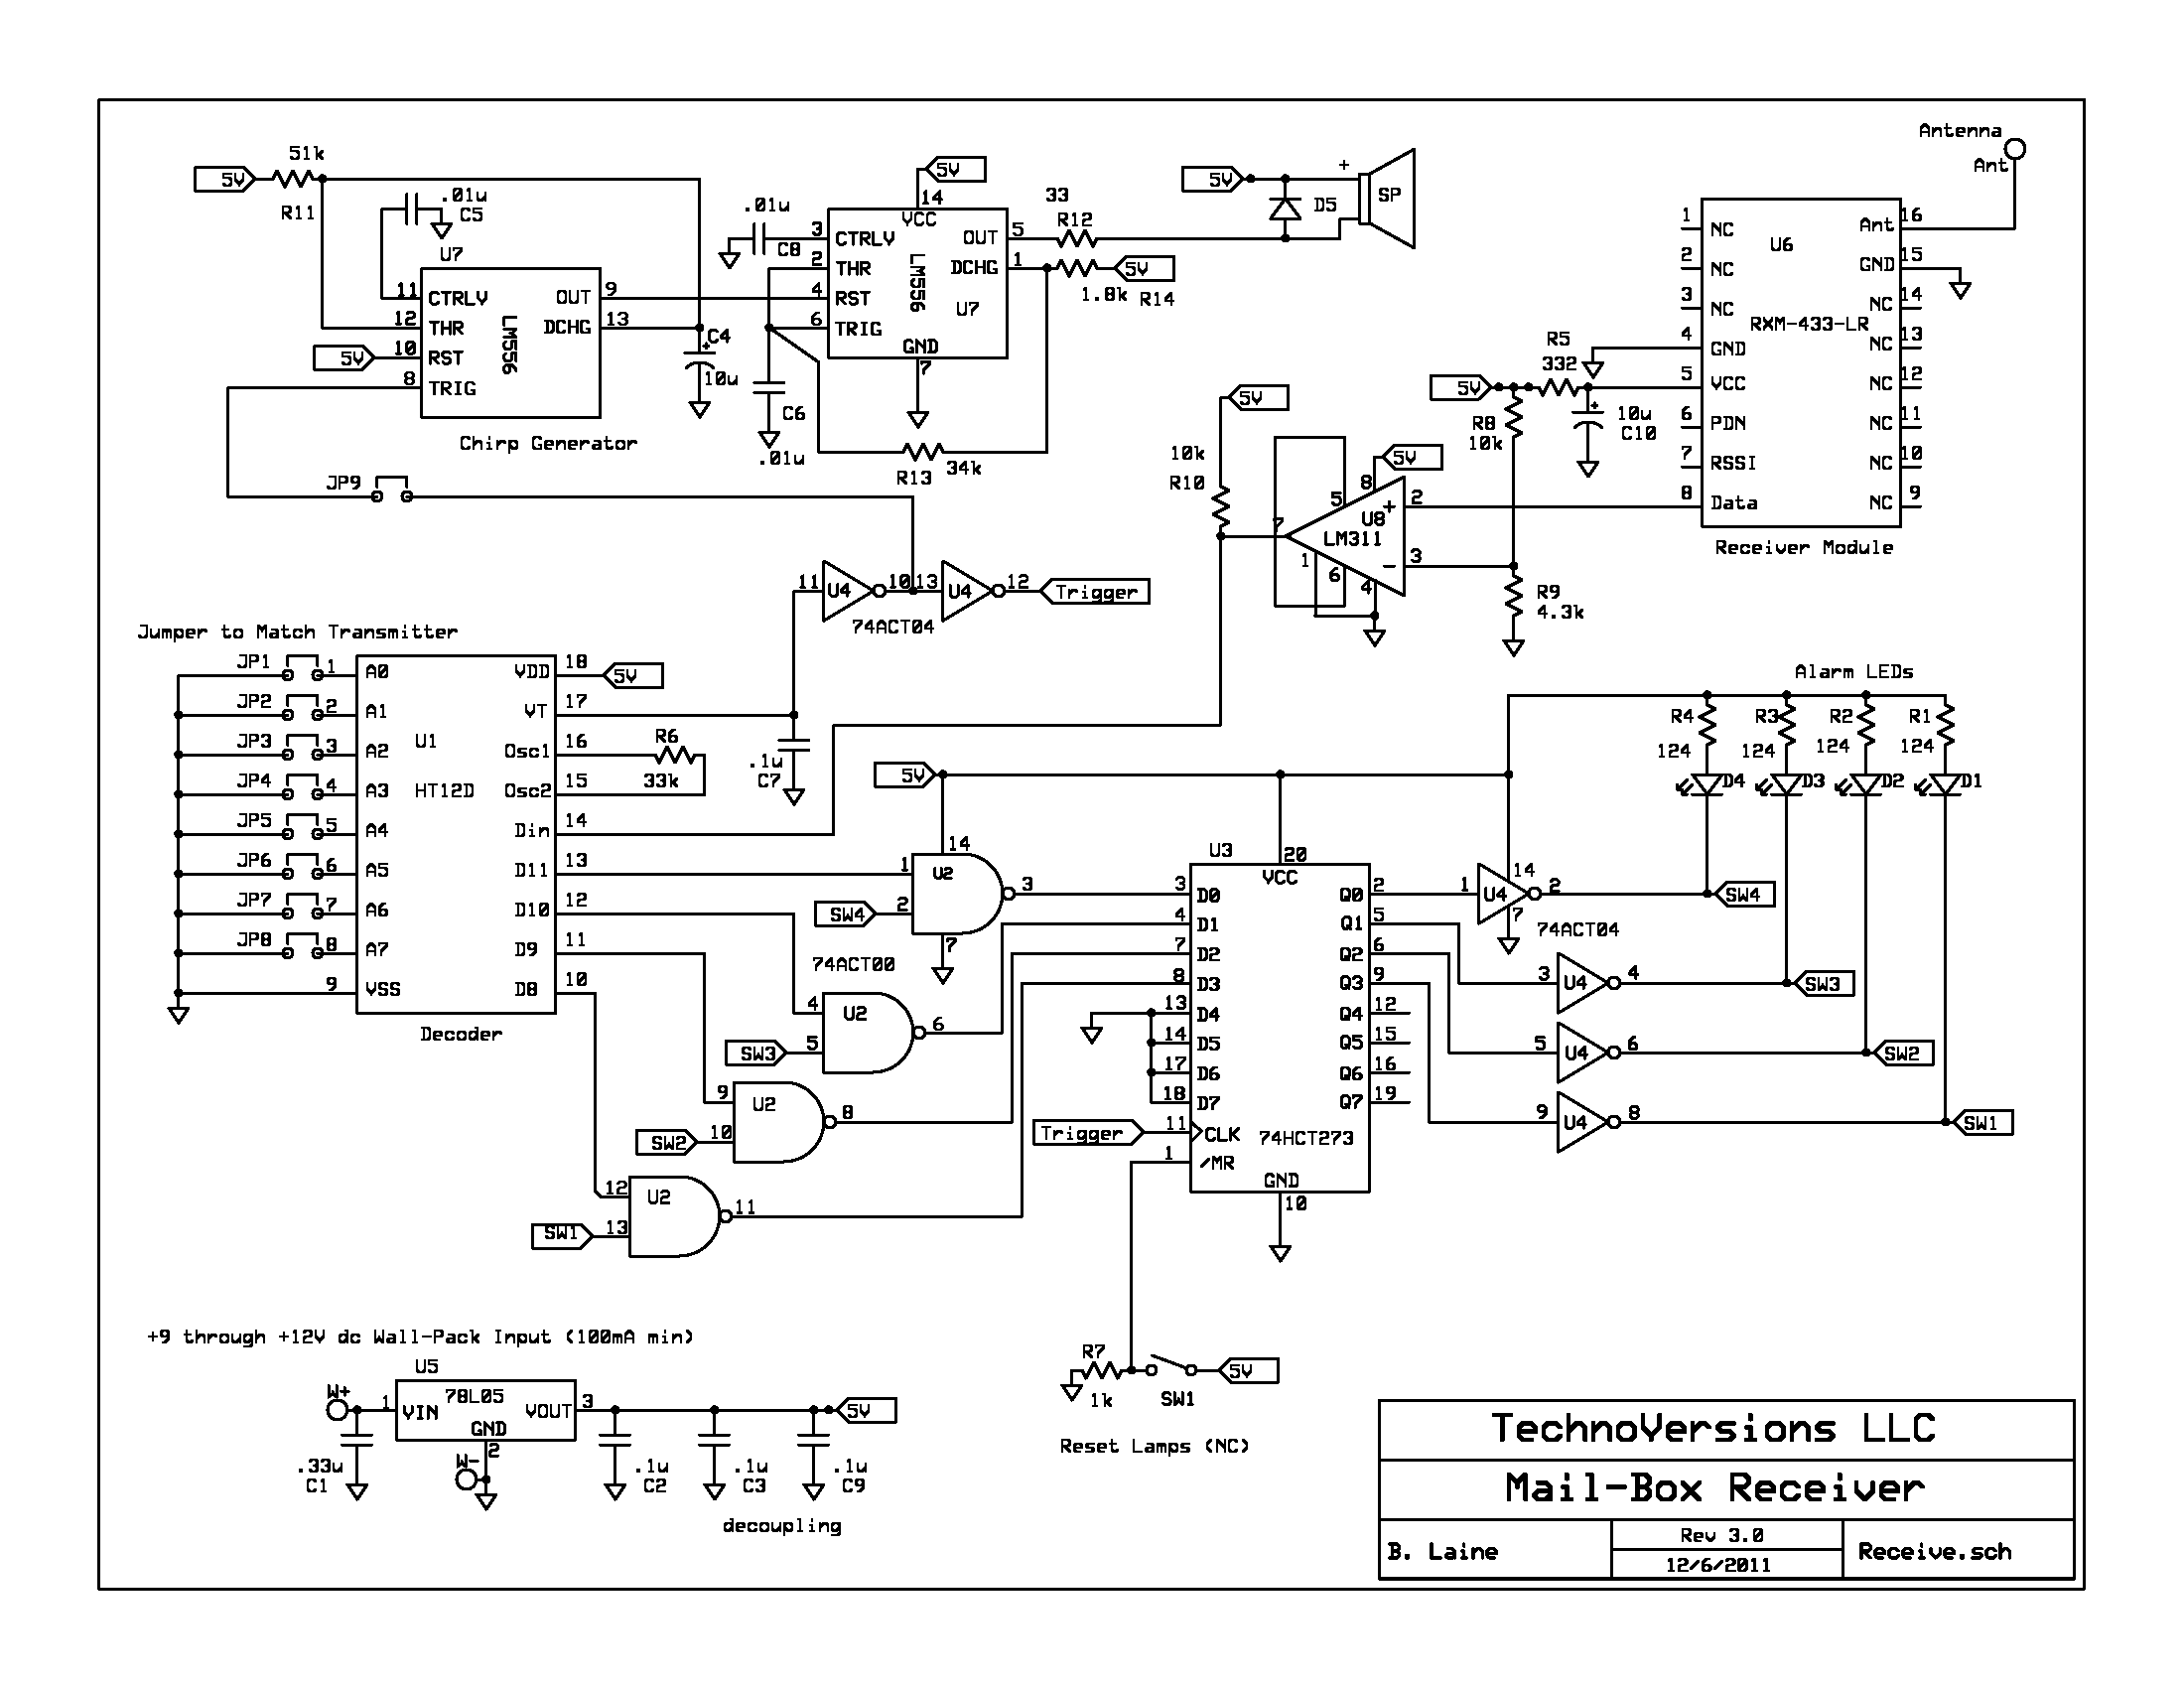 Mailbox Receiver Schematic